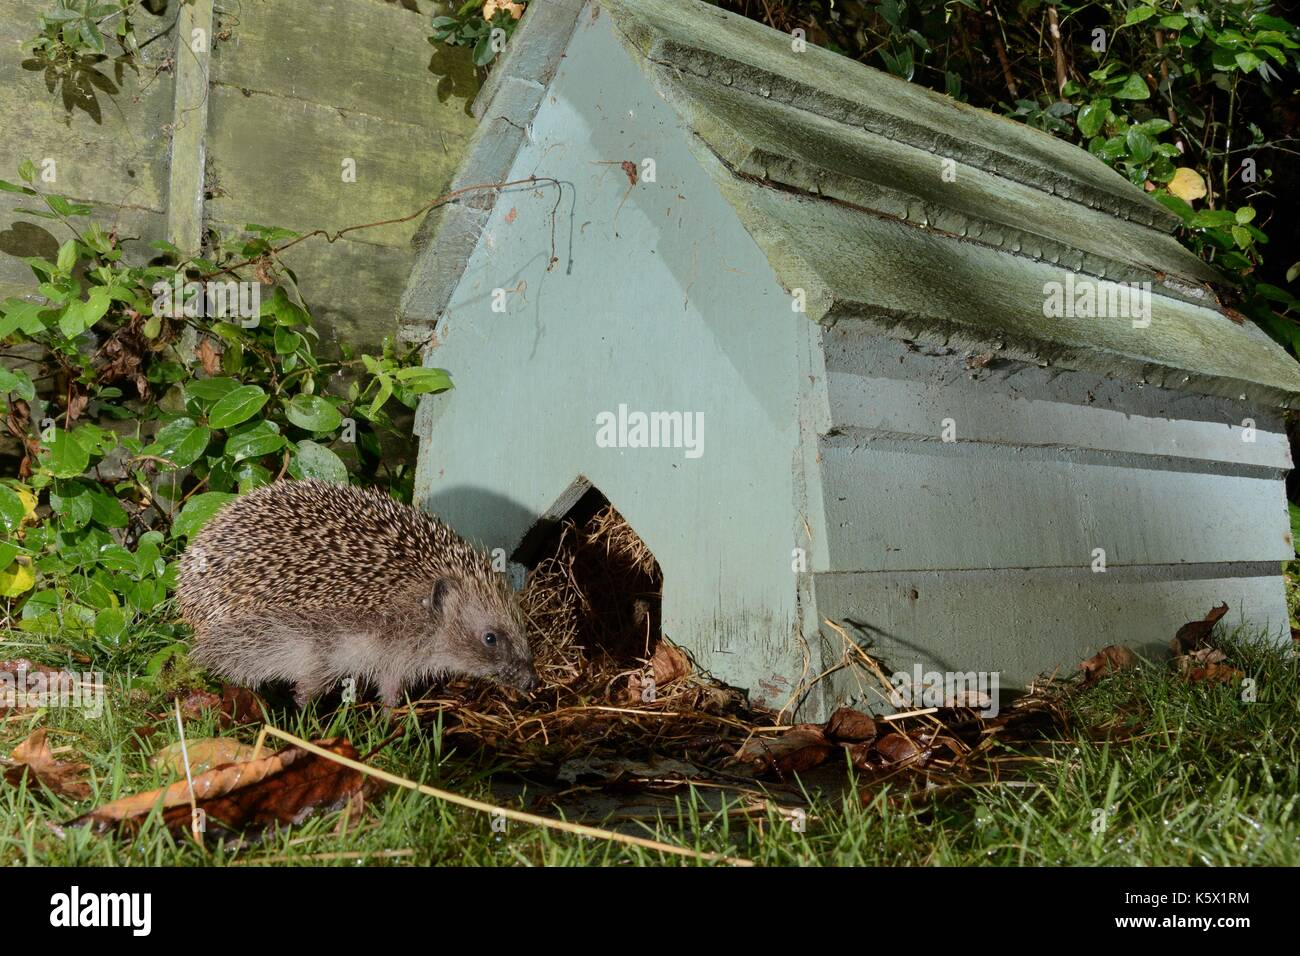 Hedgehog (Erinaceus europaeus) returning to a hedgehog house at night in a suburban garden, Chippenham, Wiltshire, UK. Taken with a camera trap. - Stock Image